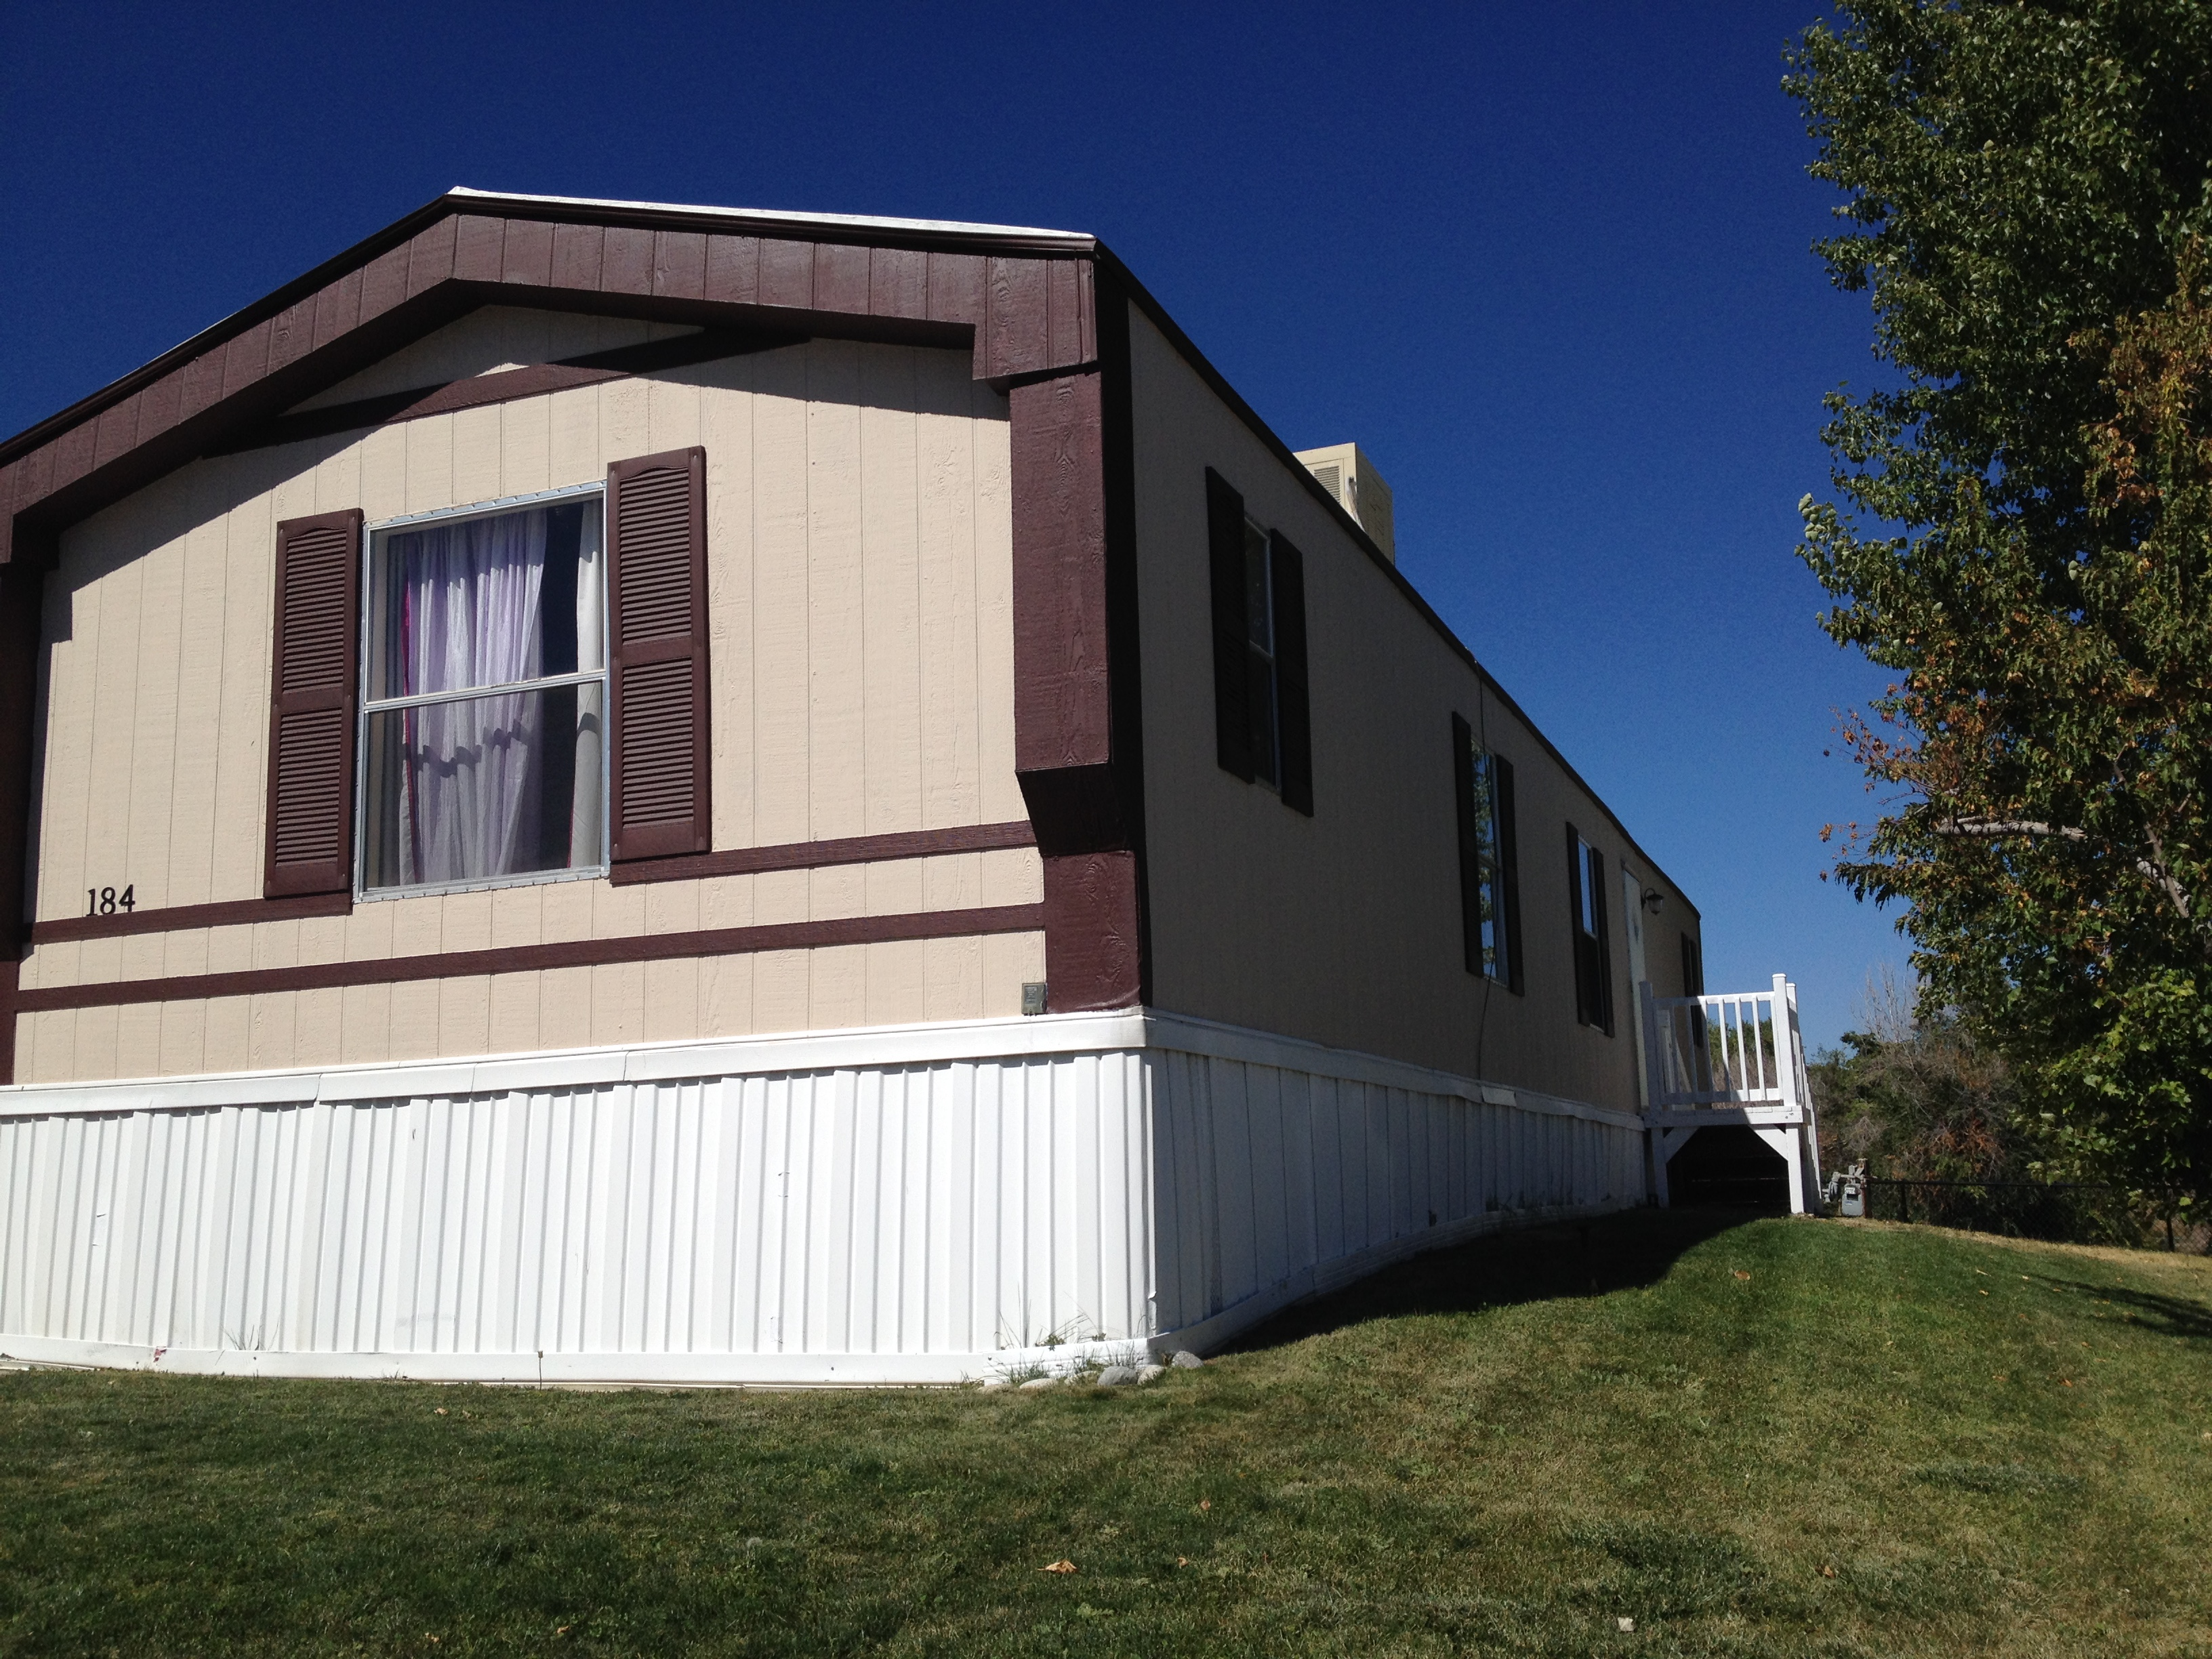 ... people that I have been unusually busy lately because I bought a mobile home the most common response is \u201cDon\u0027t you know that mobile homes depreciate? & Why I Think Investing in Depreciating Assets is a Great Idea